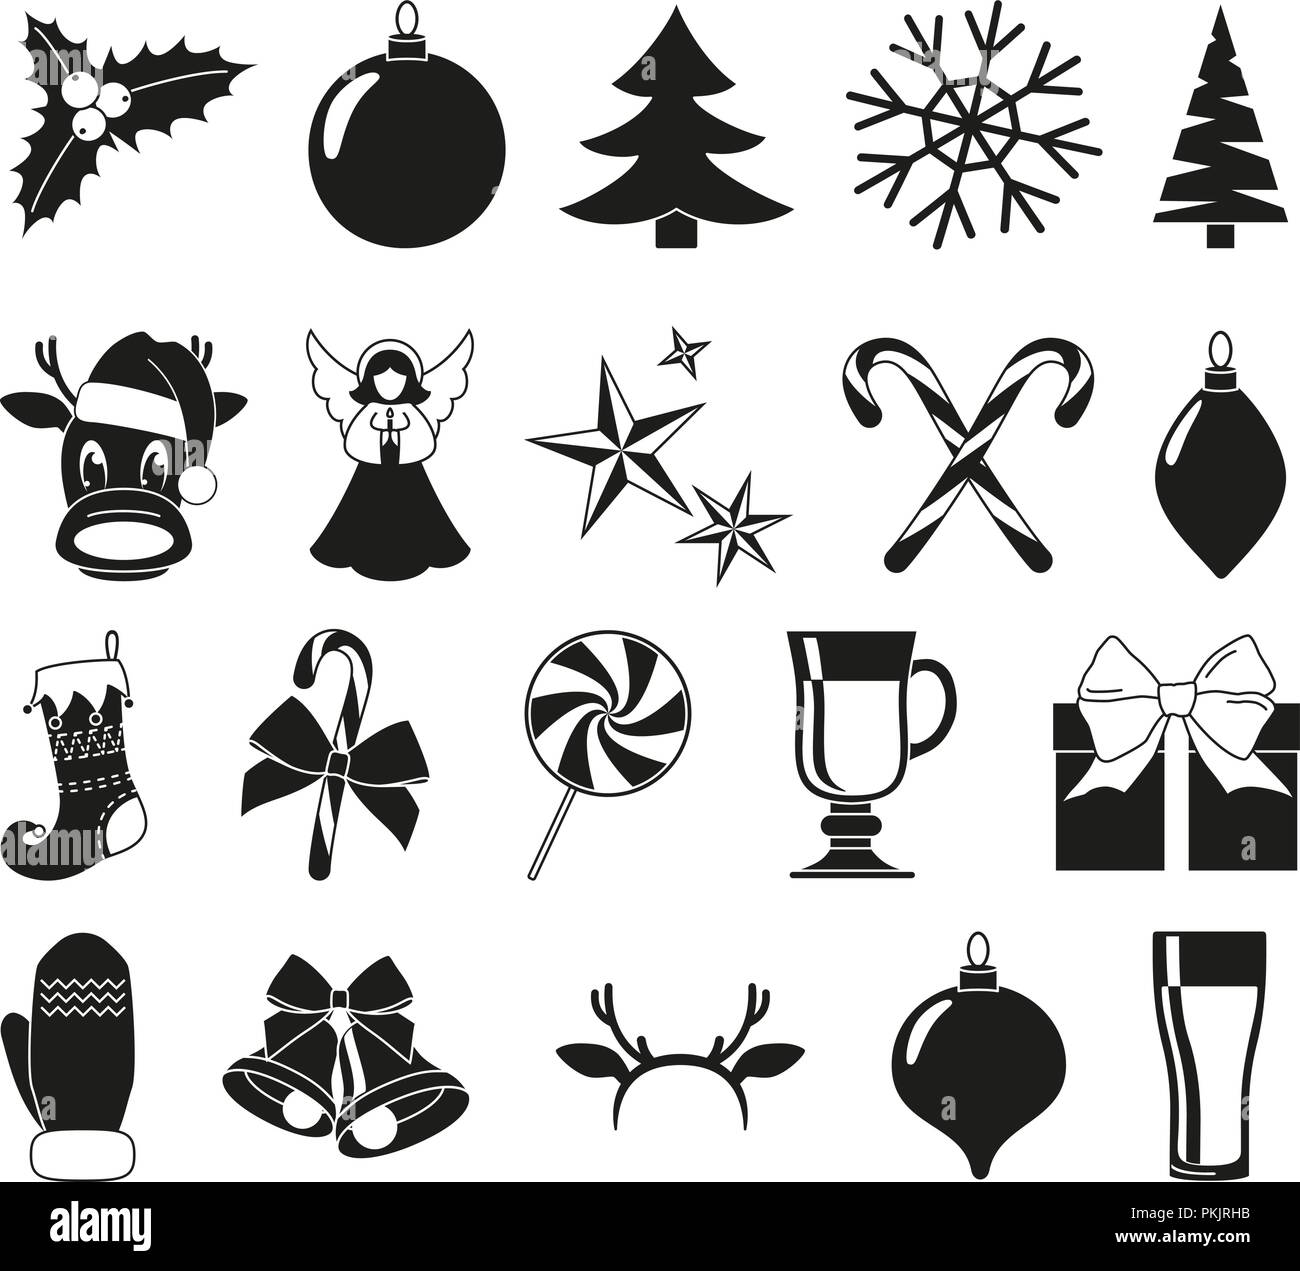 black and white 20 christmas elements new year holiday decorations xmas themed vector illustration for icon logo sticker patch label sign badg